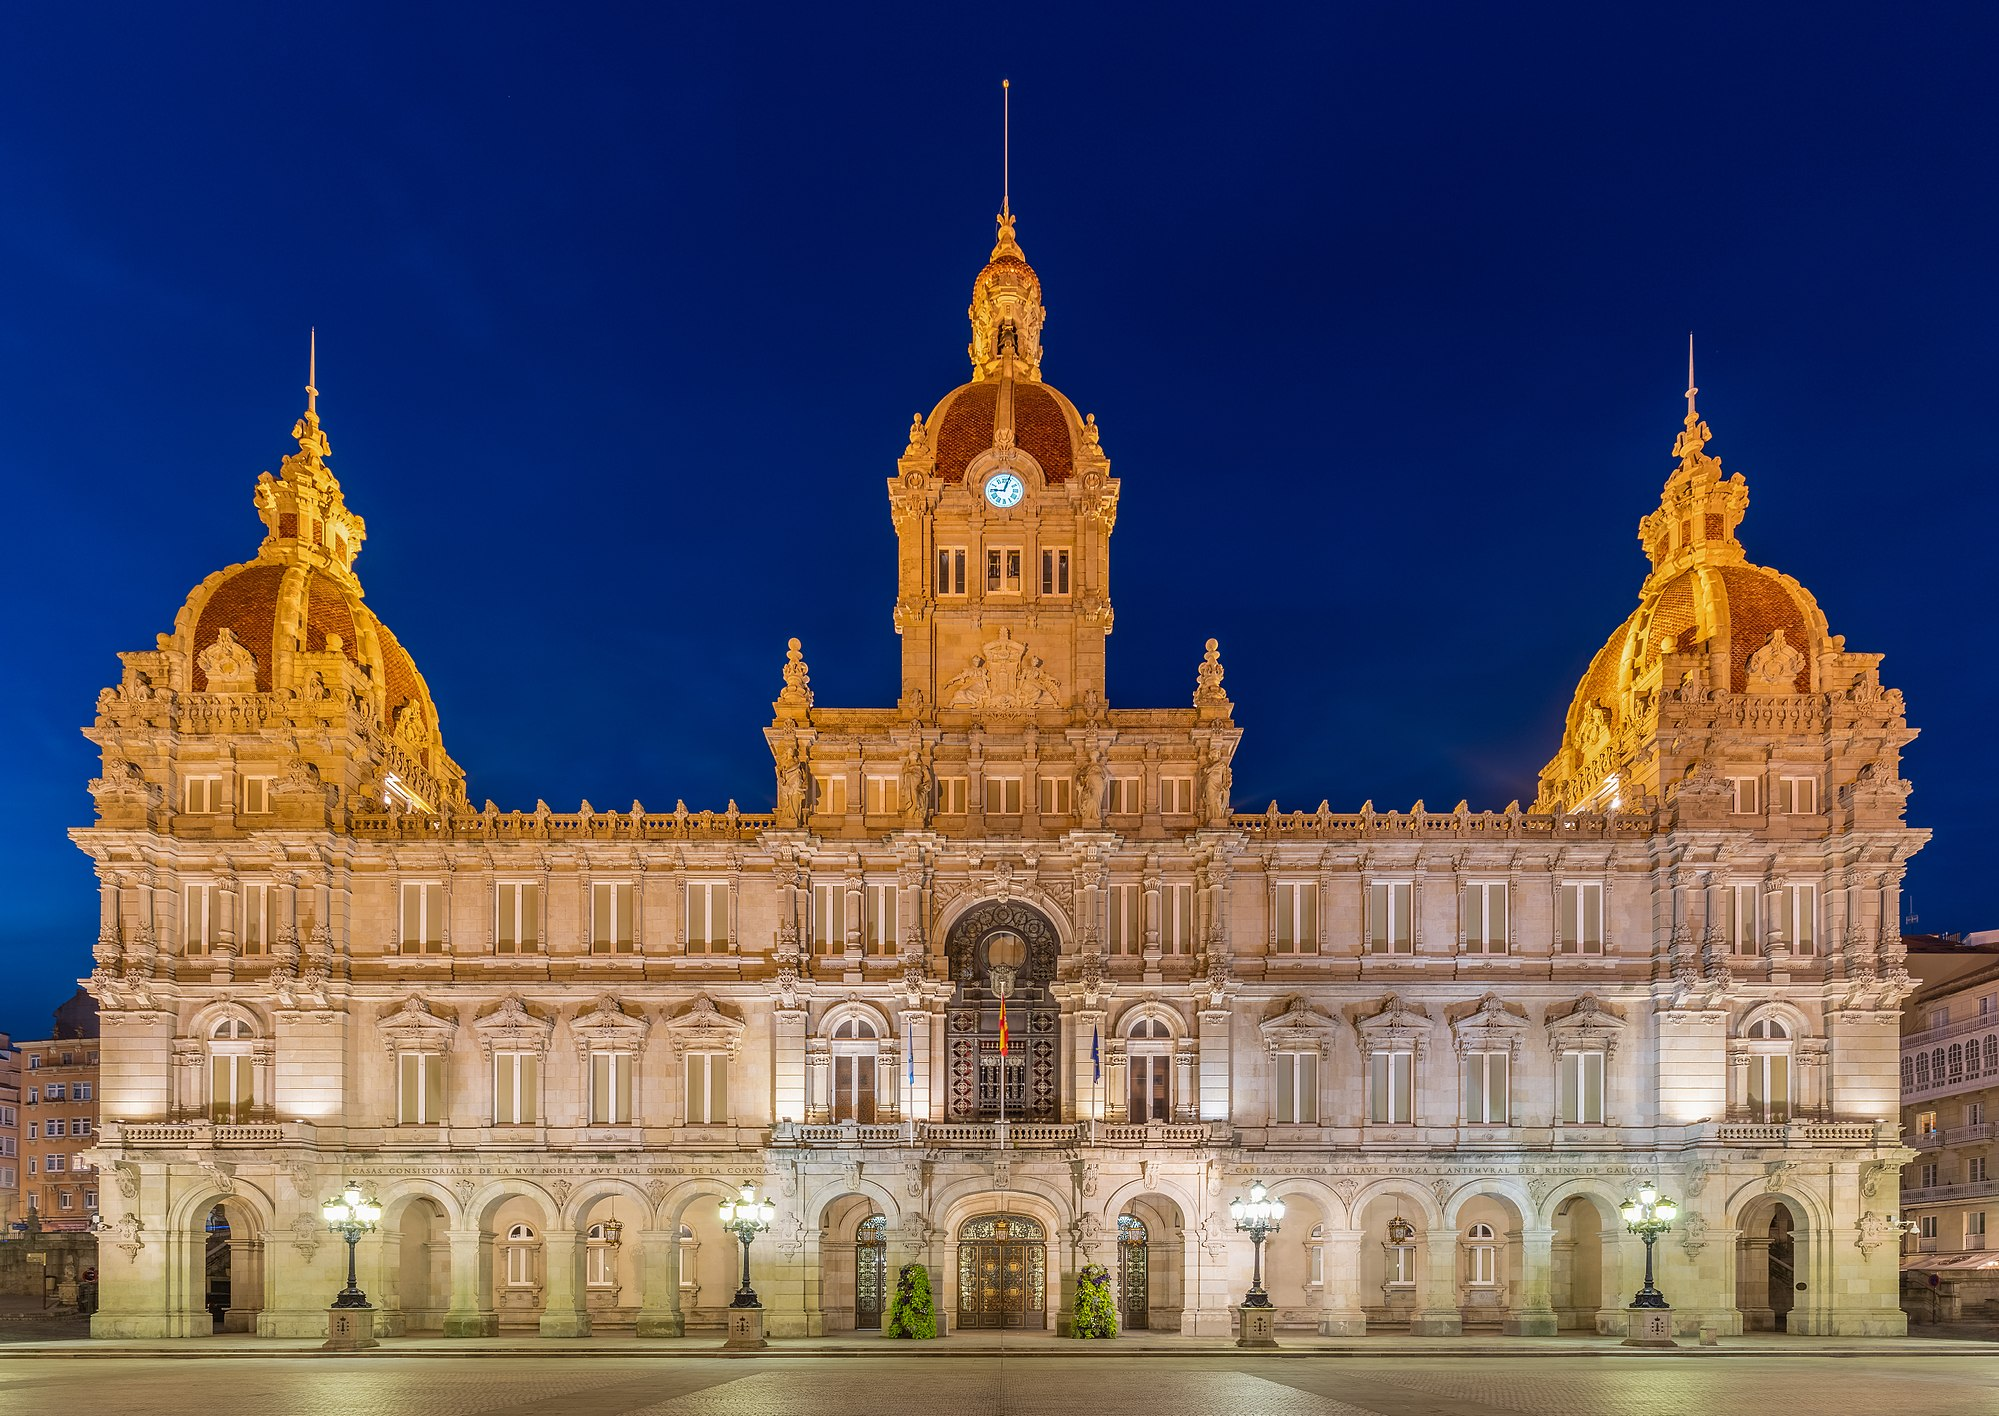 Front view of the city Hall of A Coruña, also called Municipal Palace, during the blue hour, Galicia, Spain.